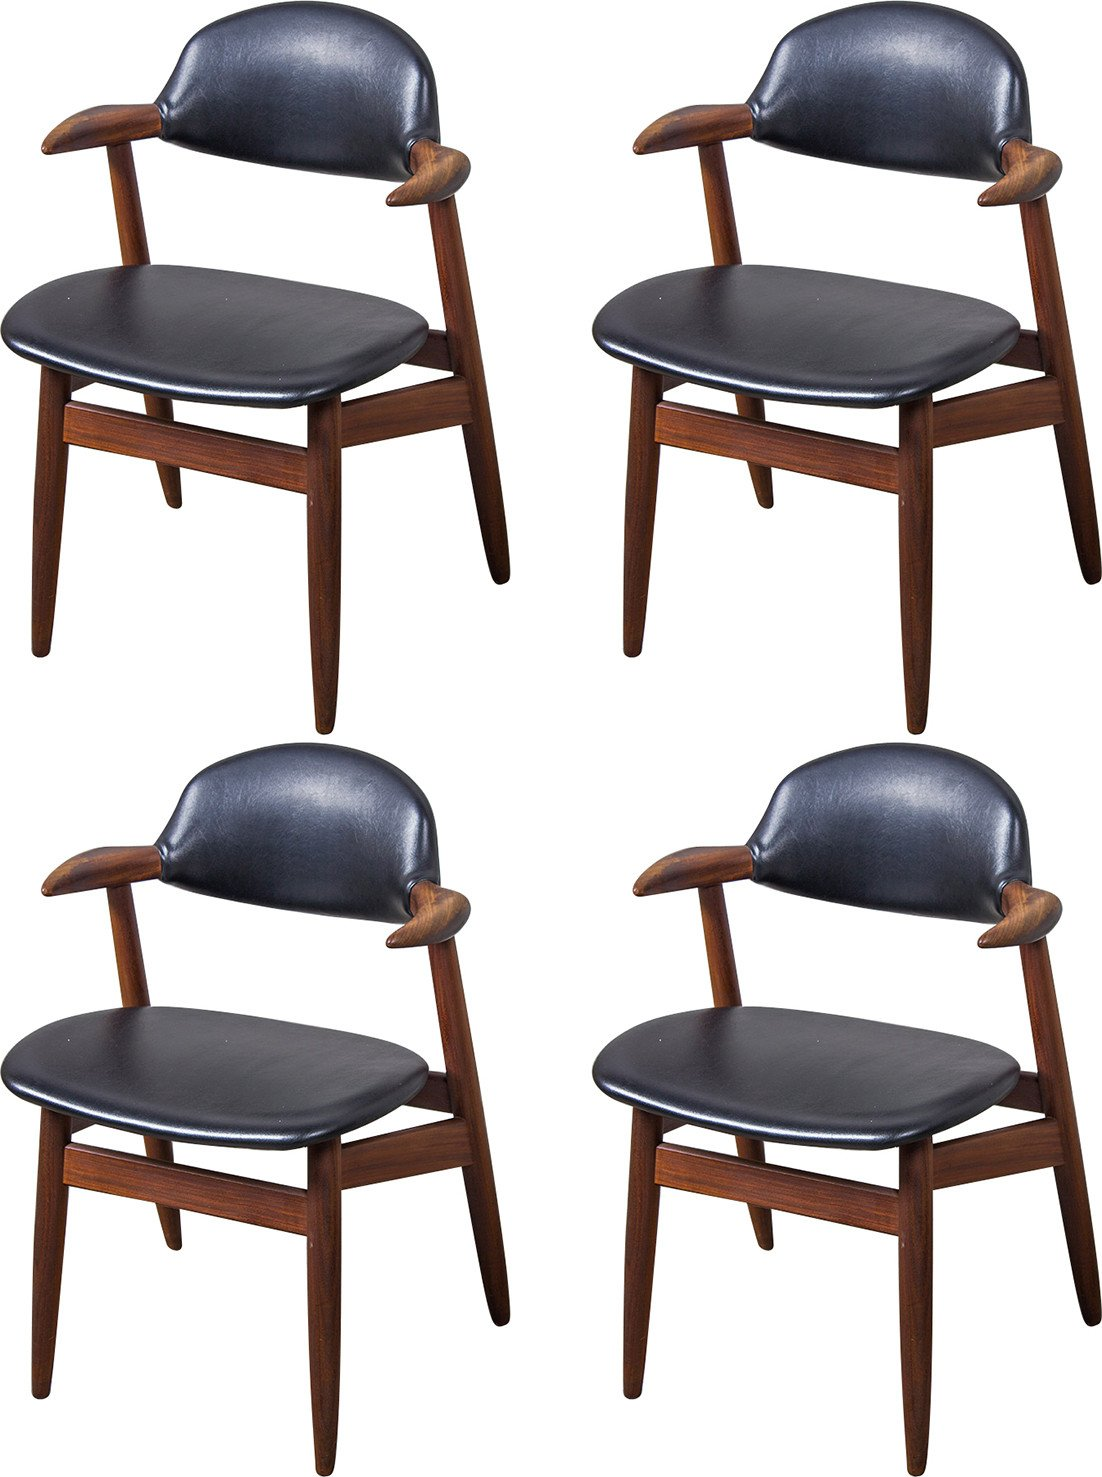 Set of Four Cowhorn Chairs, Tijsseling, Netherlands, 1950s